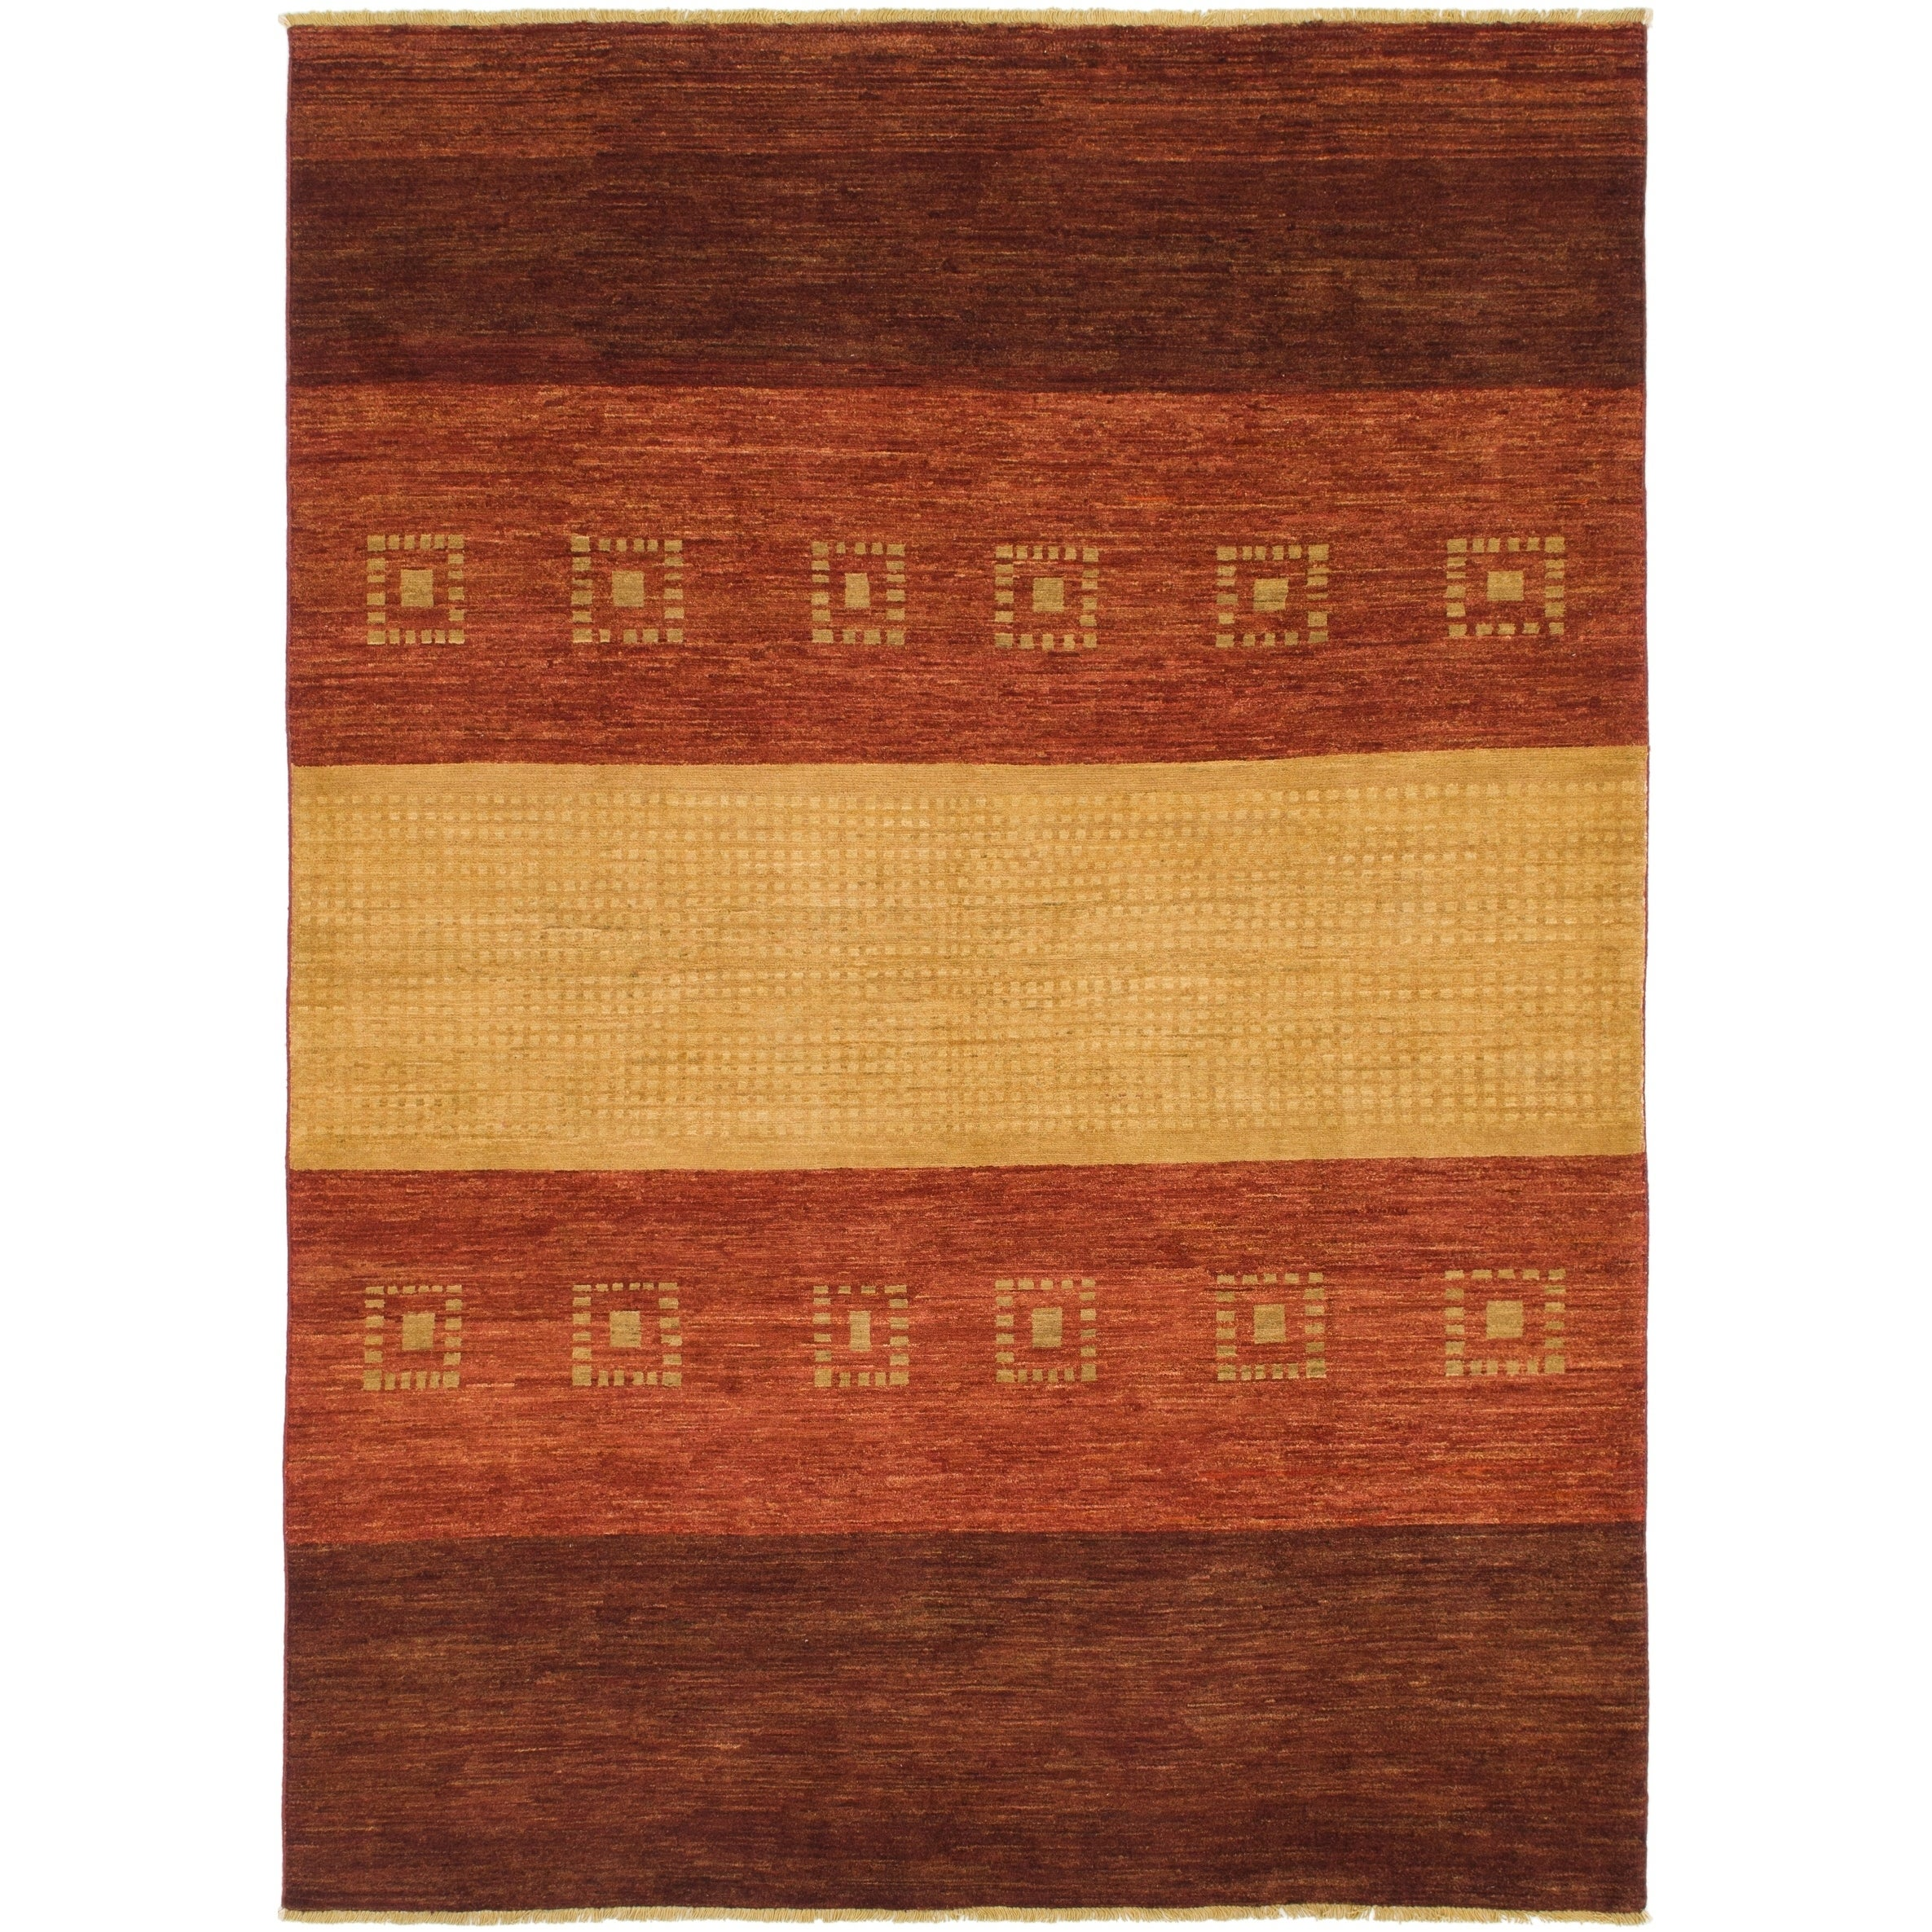 Hand Knotted Kashkuli Gabbeh Wool Area Rug - 6 10 x 9 6 (Red - 6 10 x 9 6)